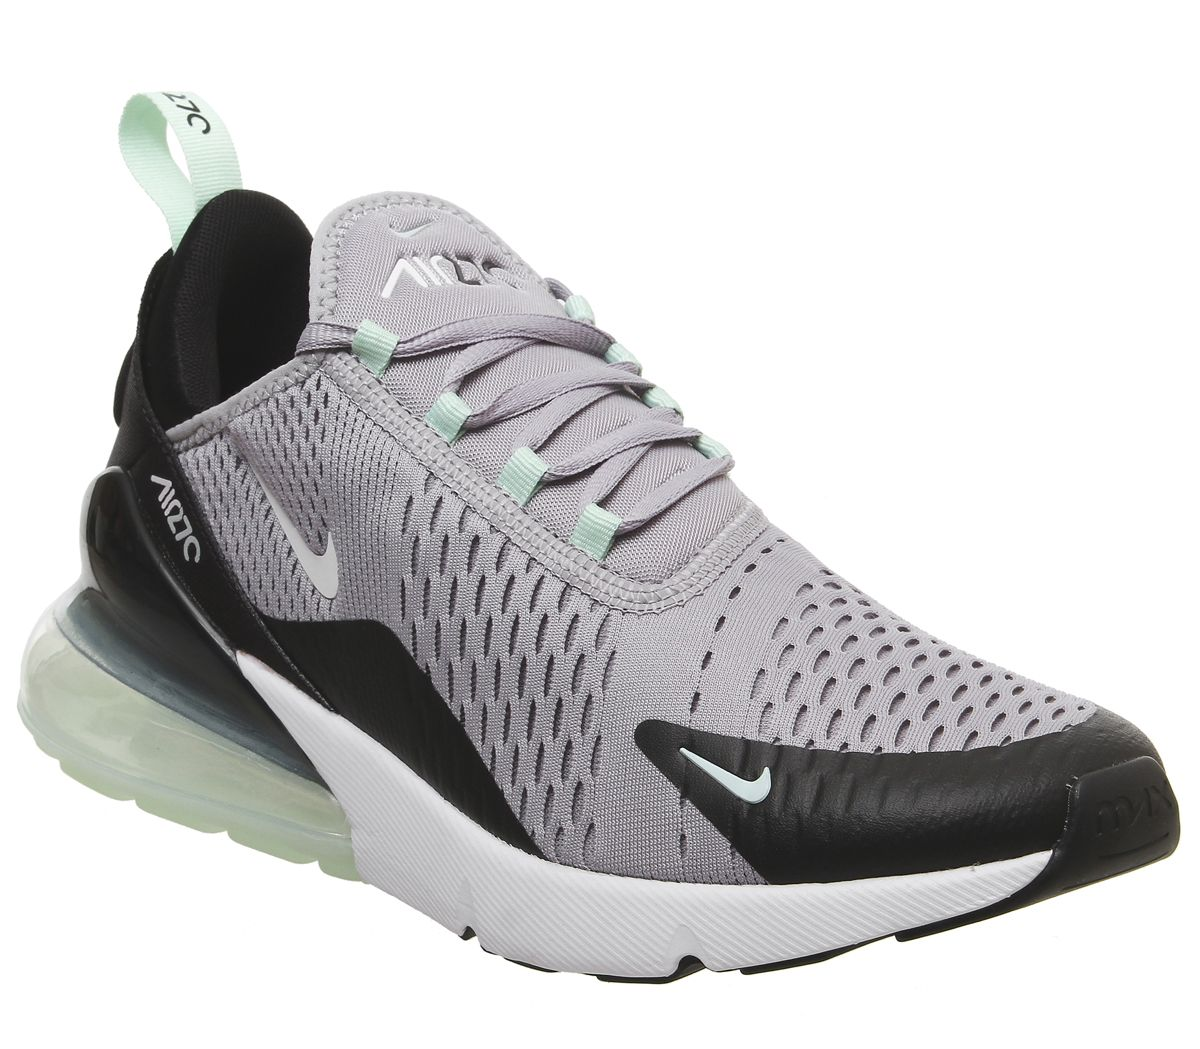 5327c1e76025b Nike Air Max 270 Trainers Atmosphere Grey White Fresh Mint Black ...